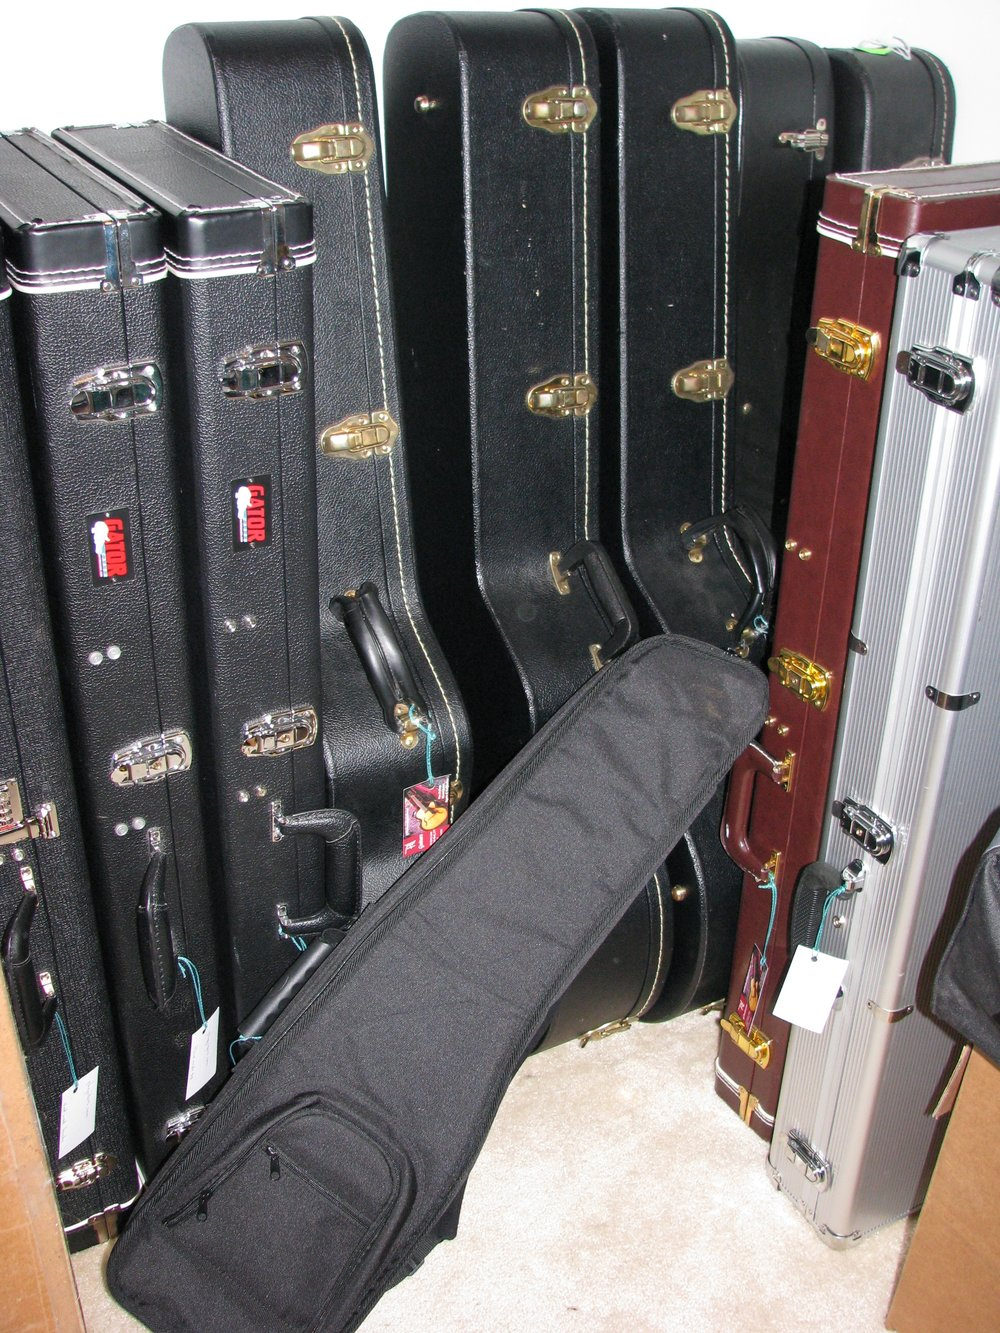 No Guitar Goes Unprotected!